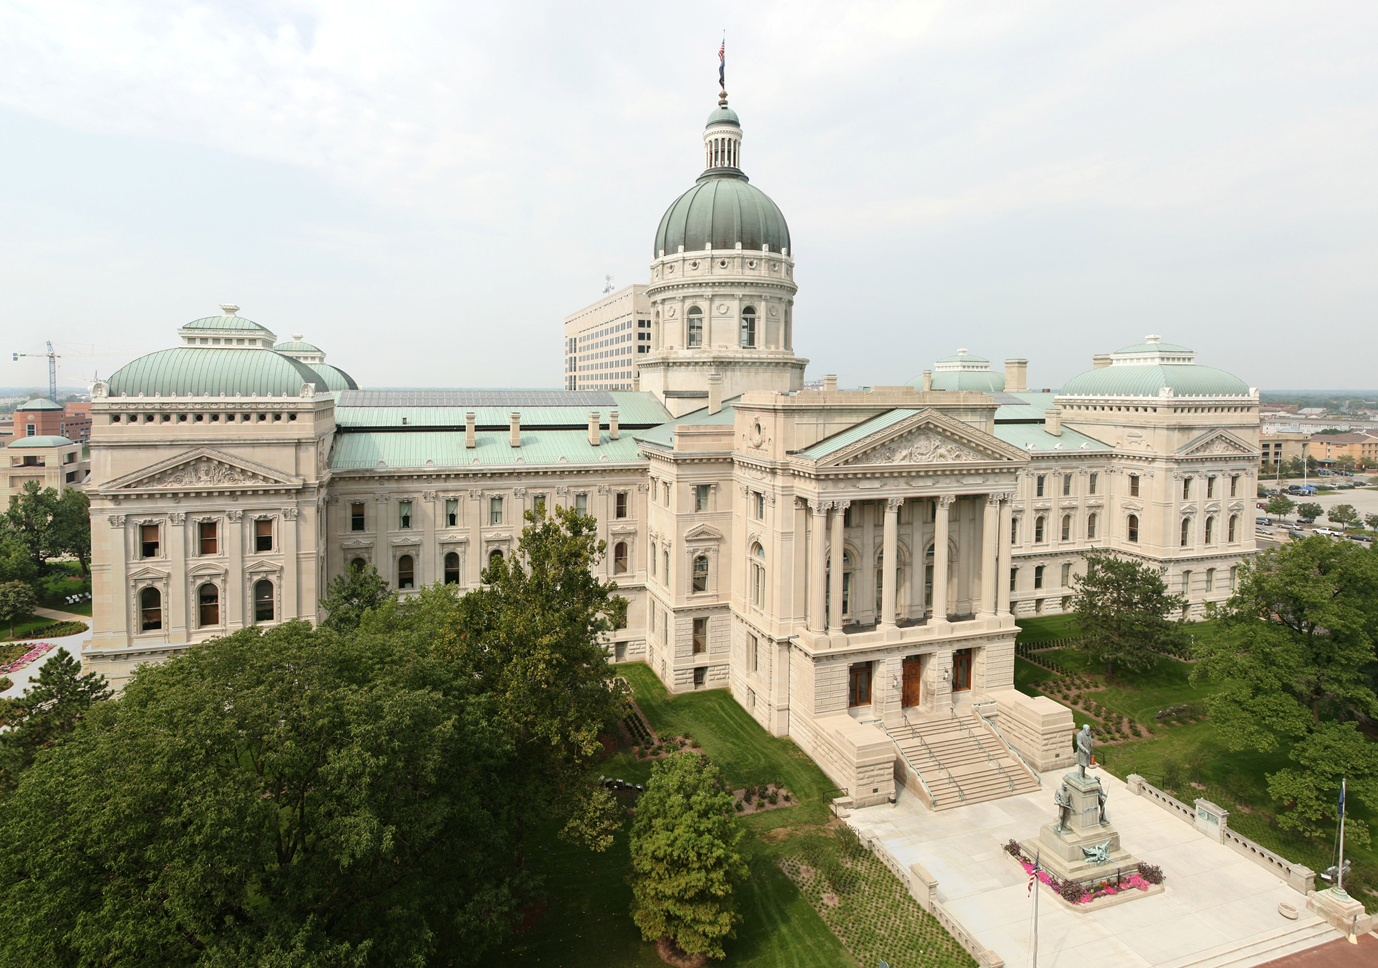 State Lawmakers Vote on Bills on Final Day of the Legislative Session